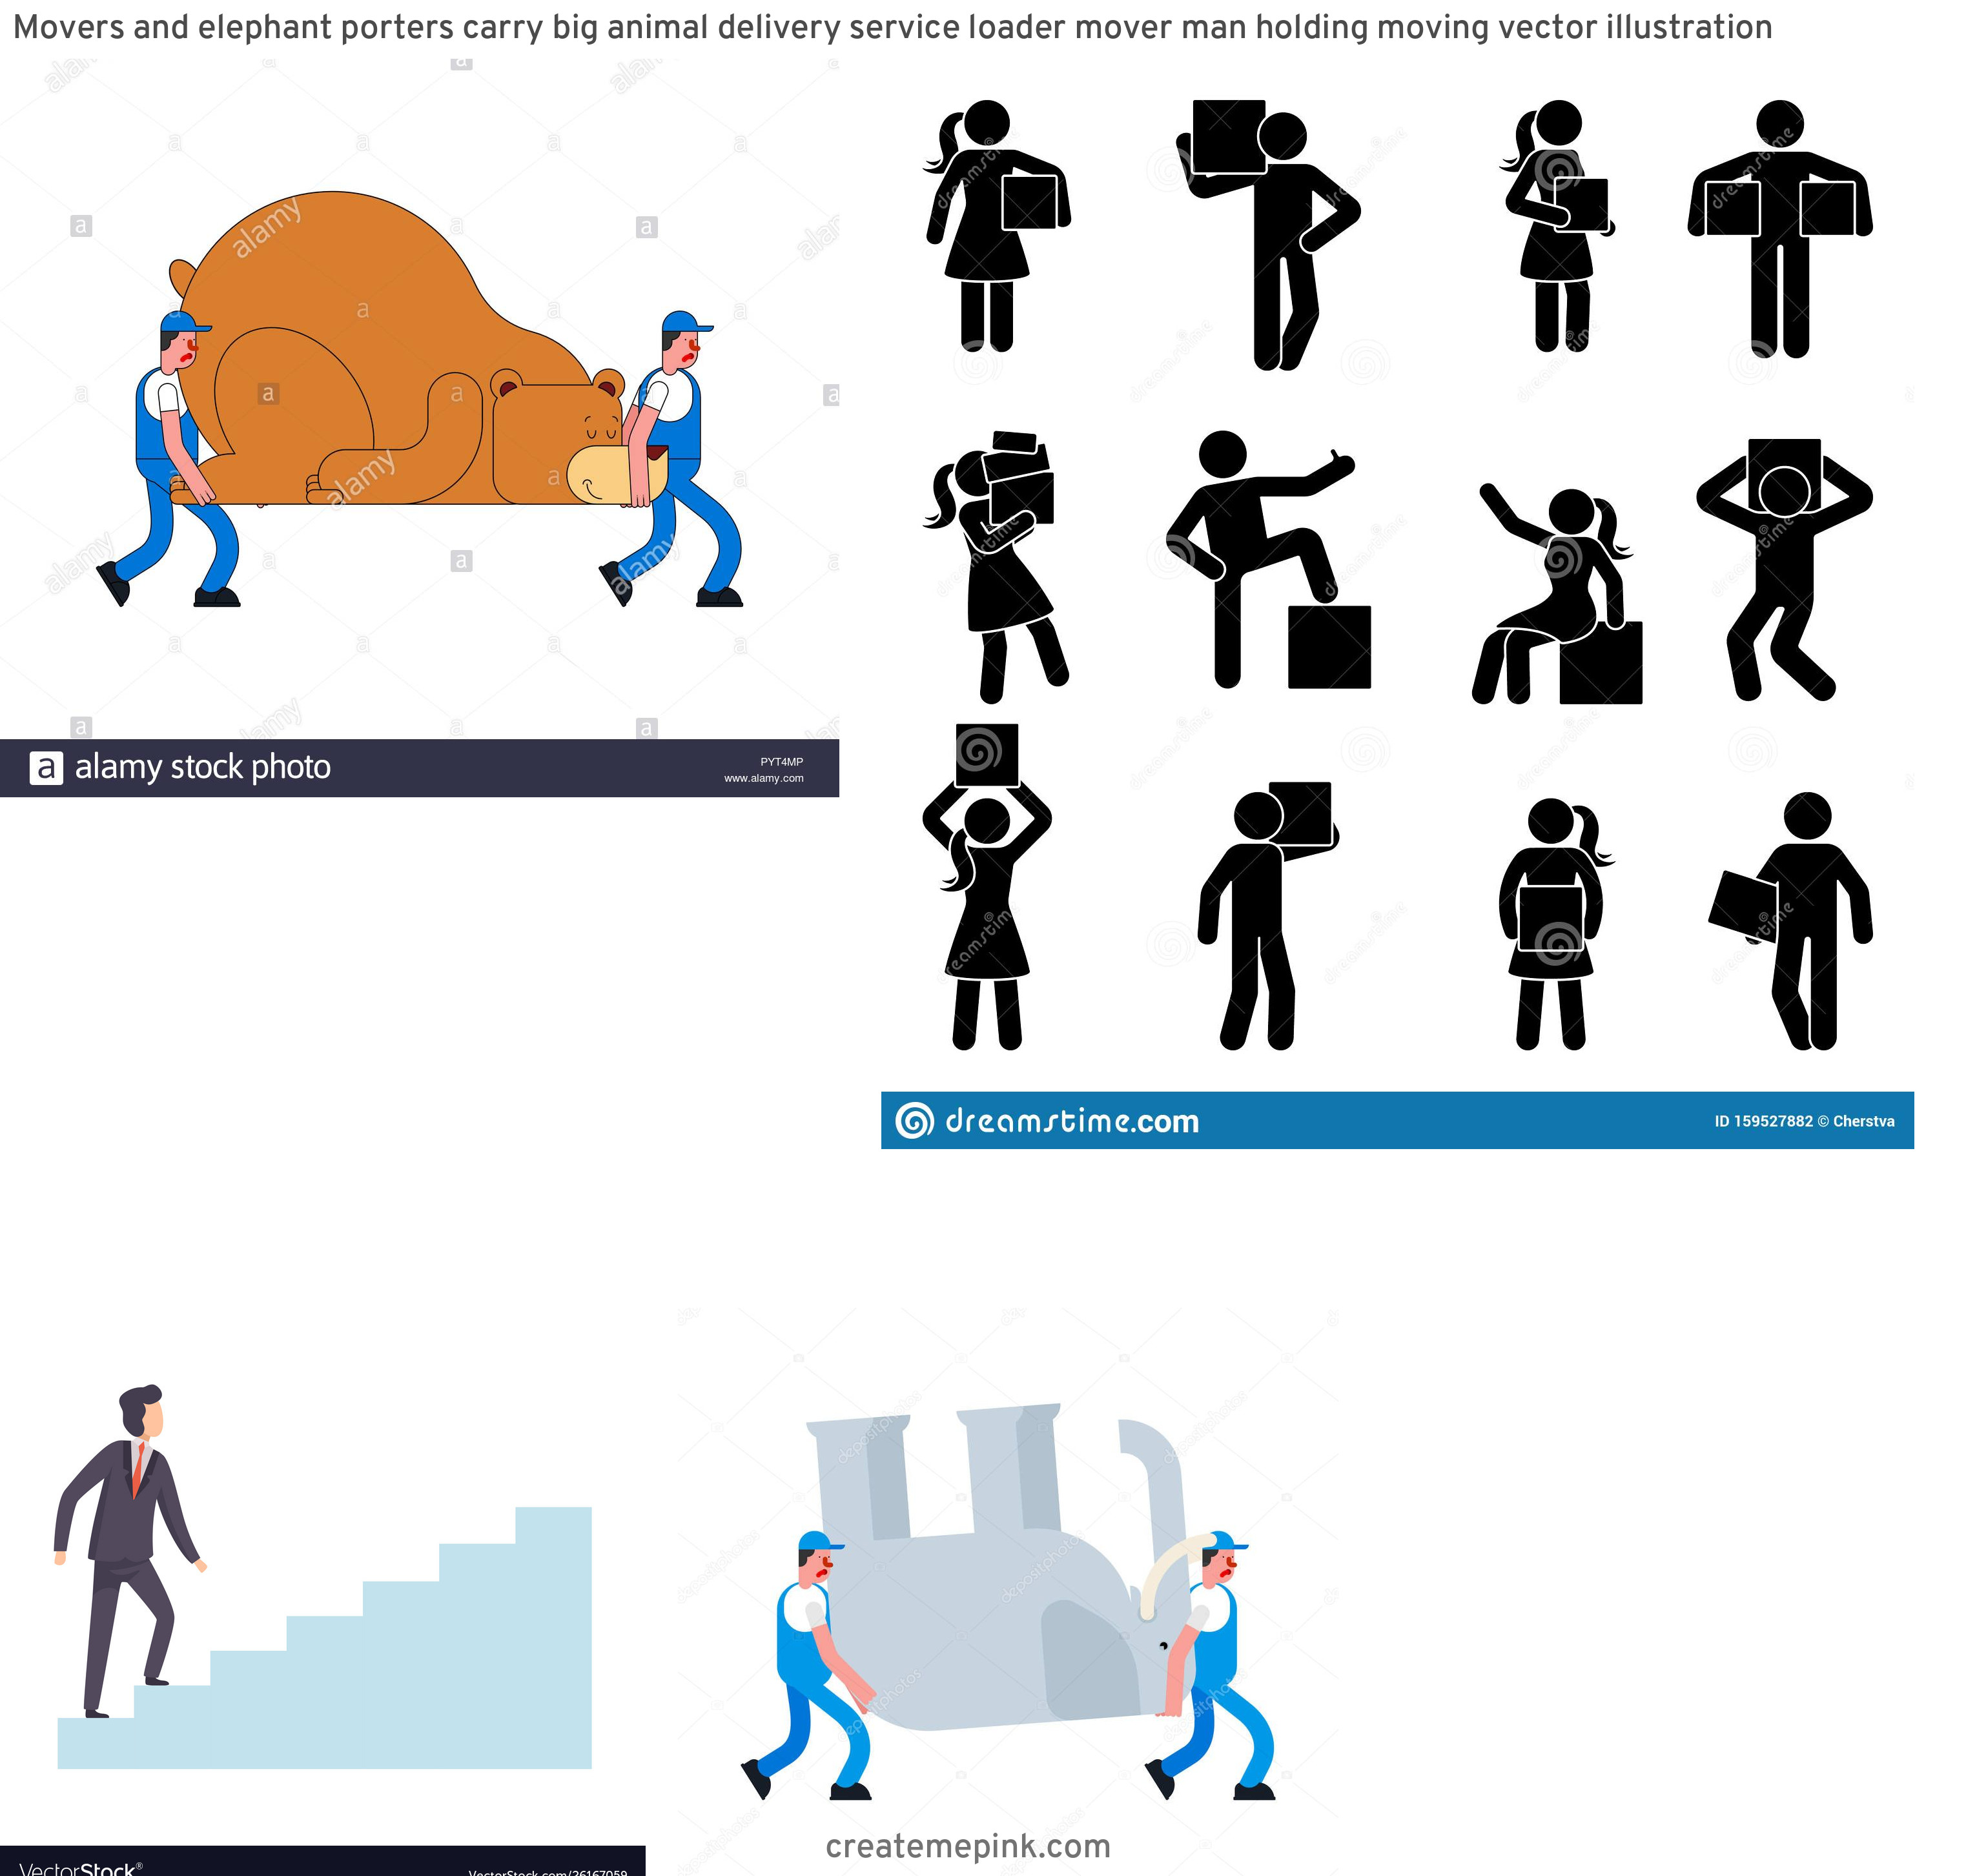 Vector Person Moving: Movers And Elephant Porters Carry Big Animal Delivery Service Loader Mover Man Holding Moving Vector Illustration